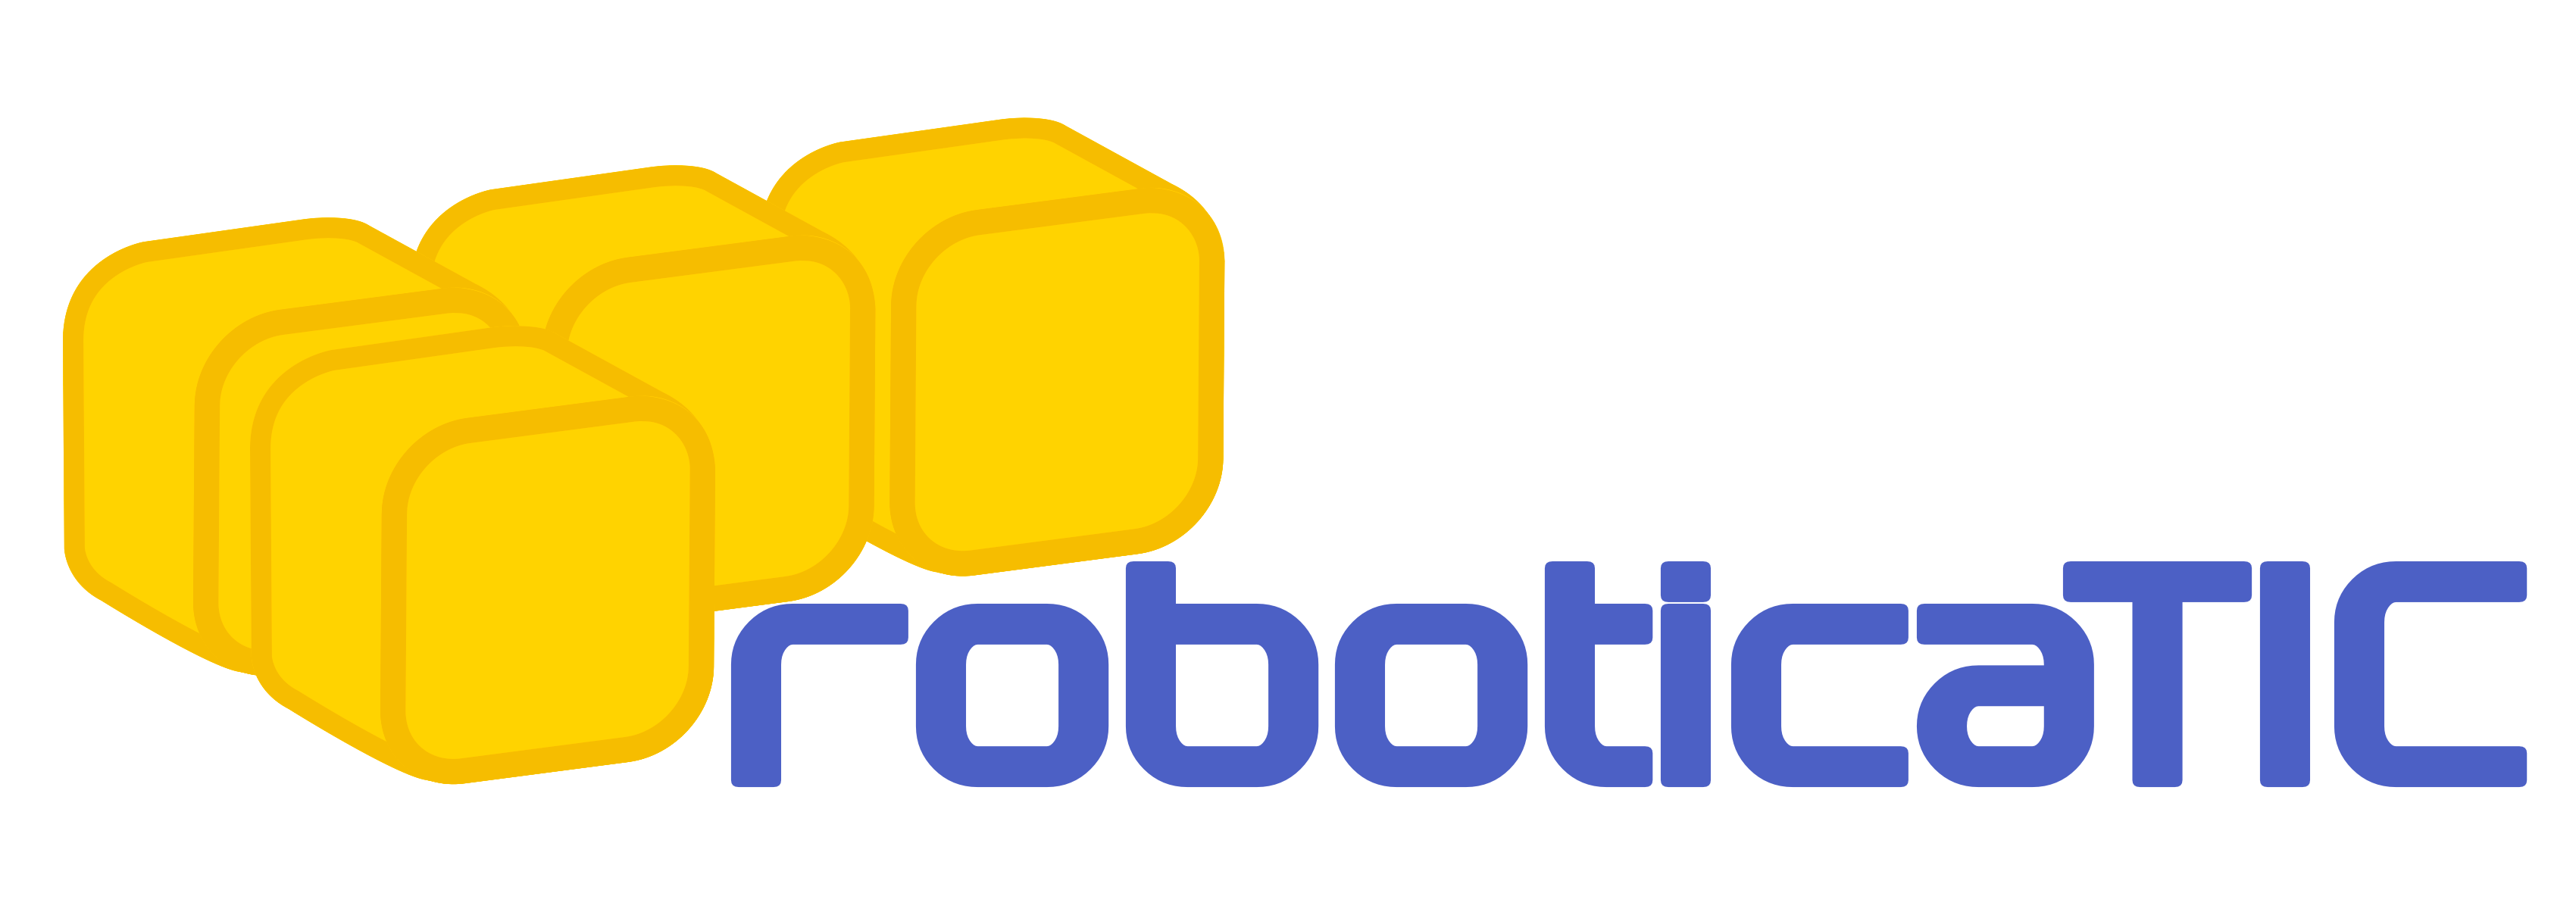 roboticaTIC